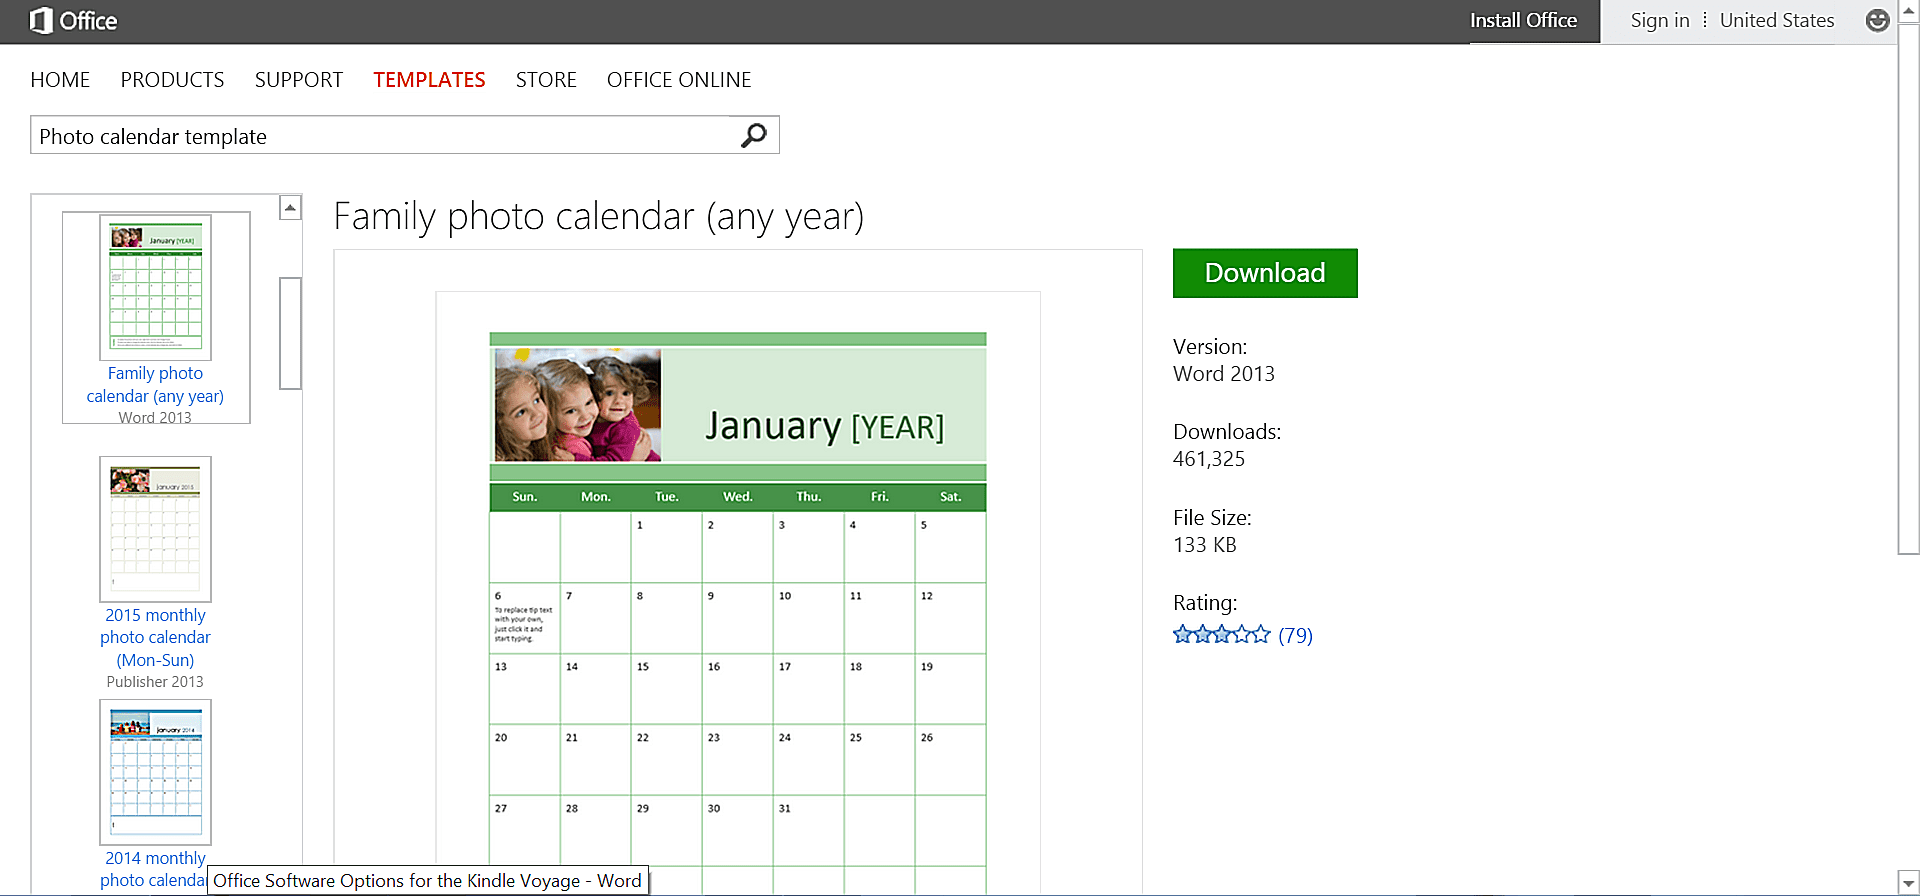 Customizable Calendar Templates For Microsoft Office - Software release calendar template